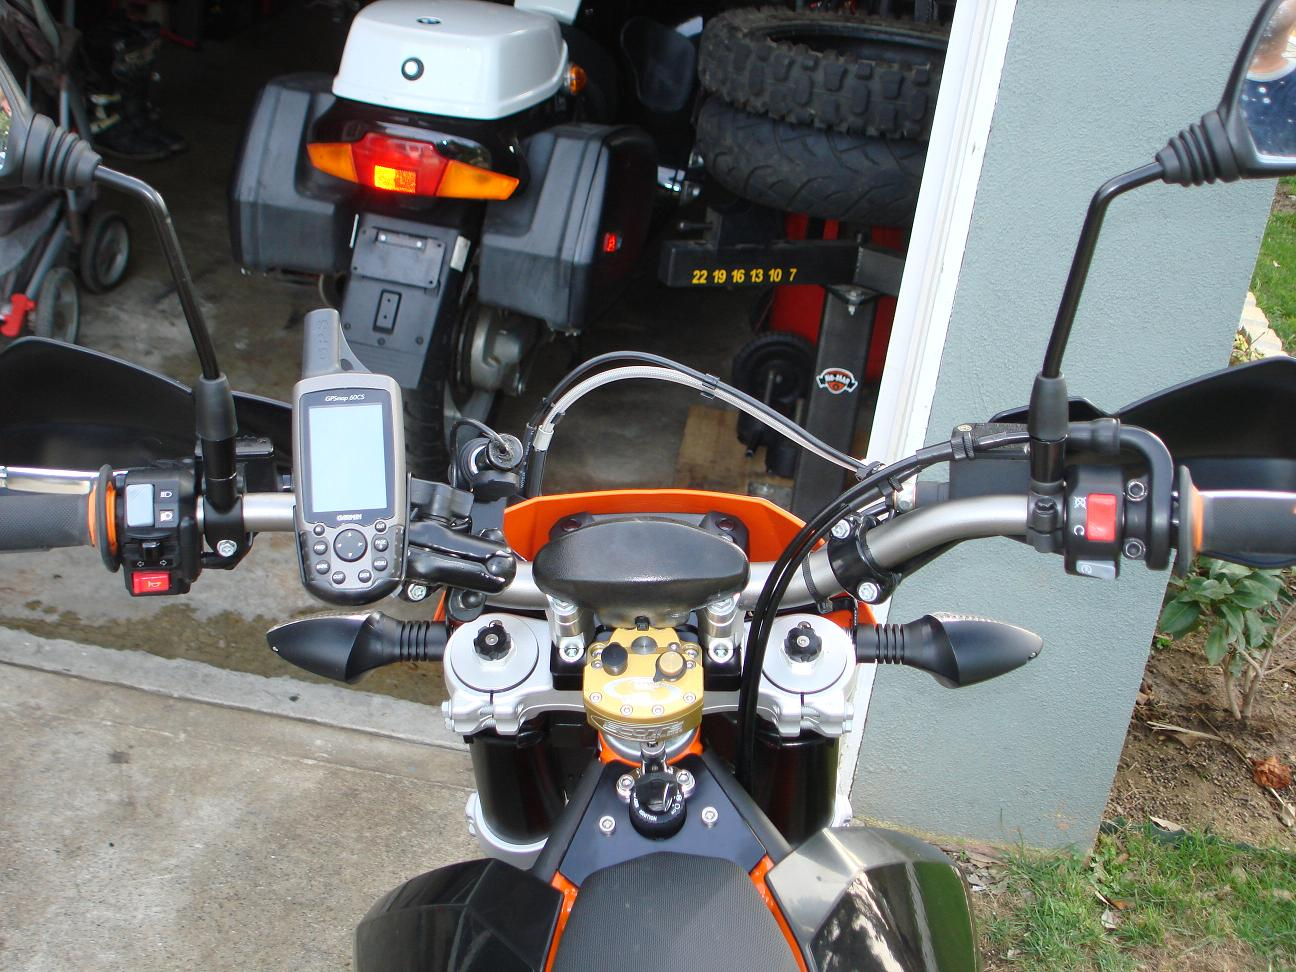 Offroading Gps And Mount Photos And Articles